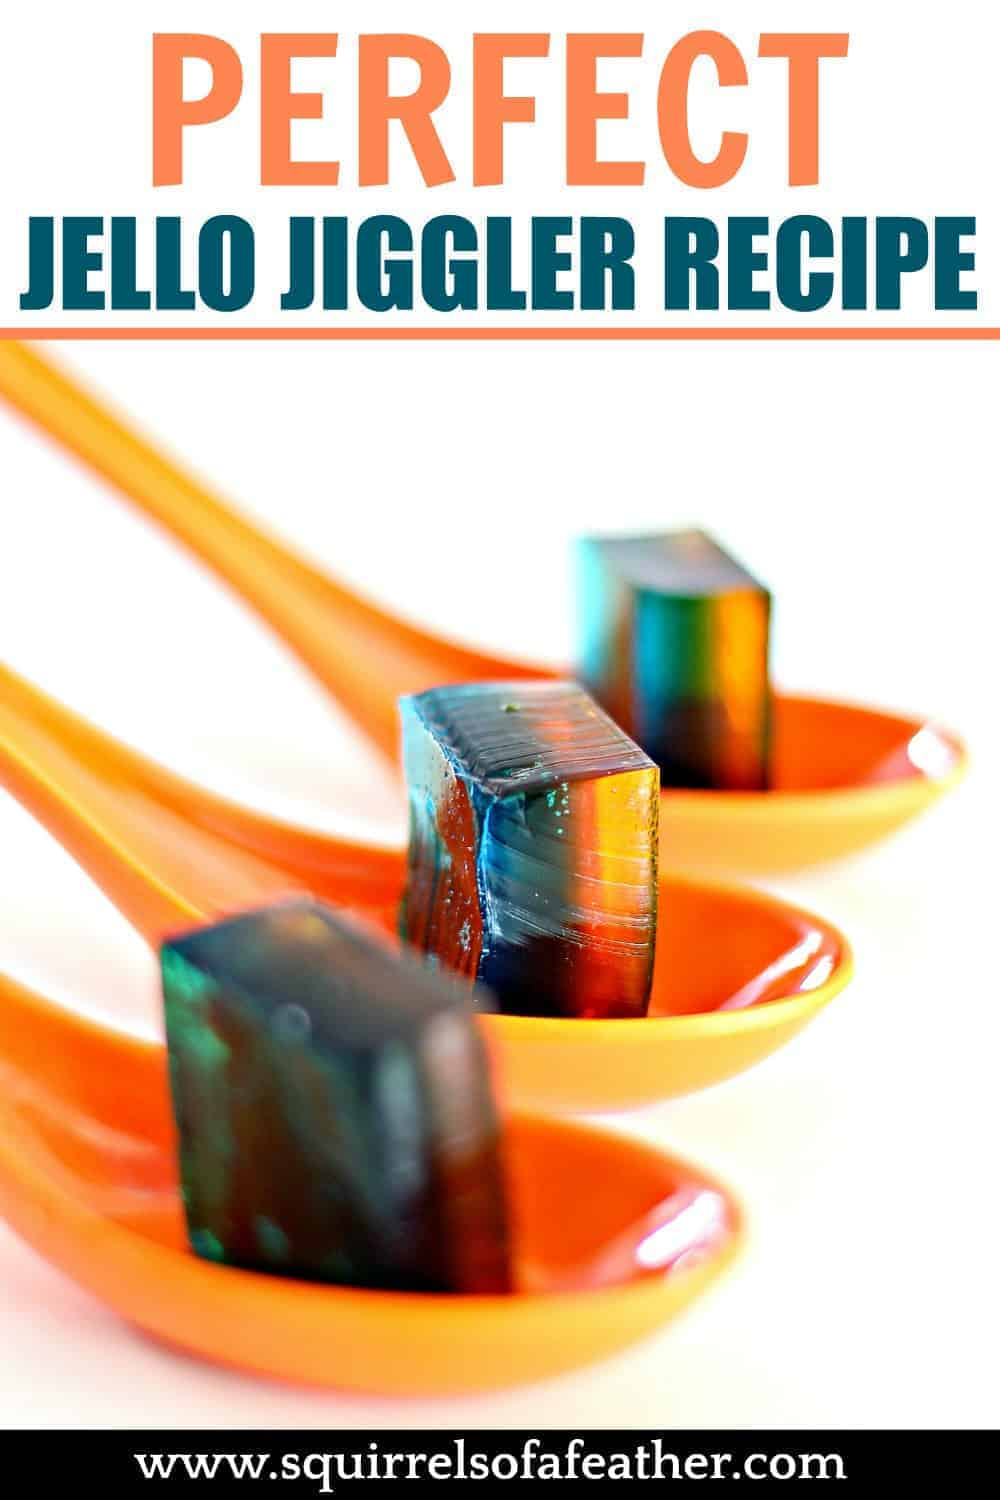 Three Jello Jigglers on three spoons